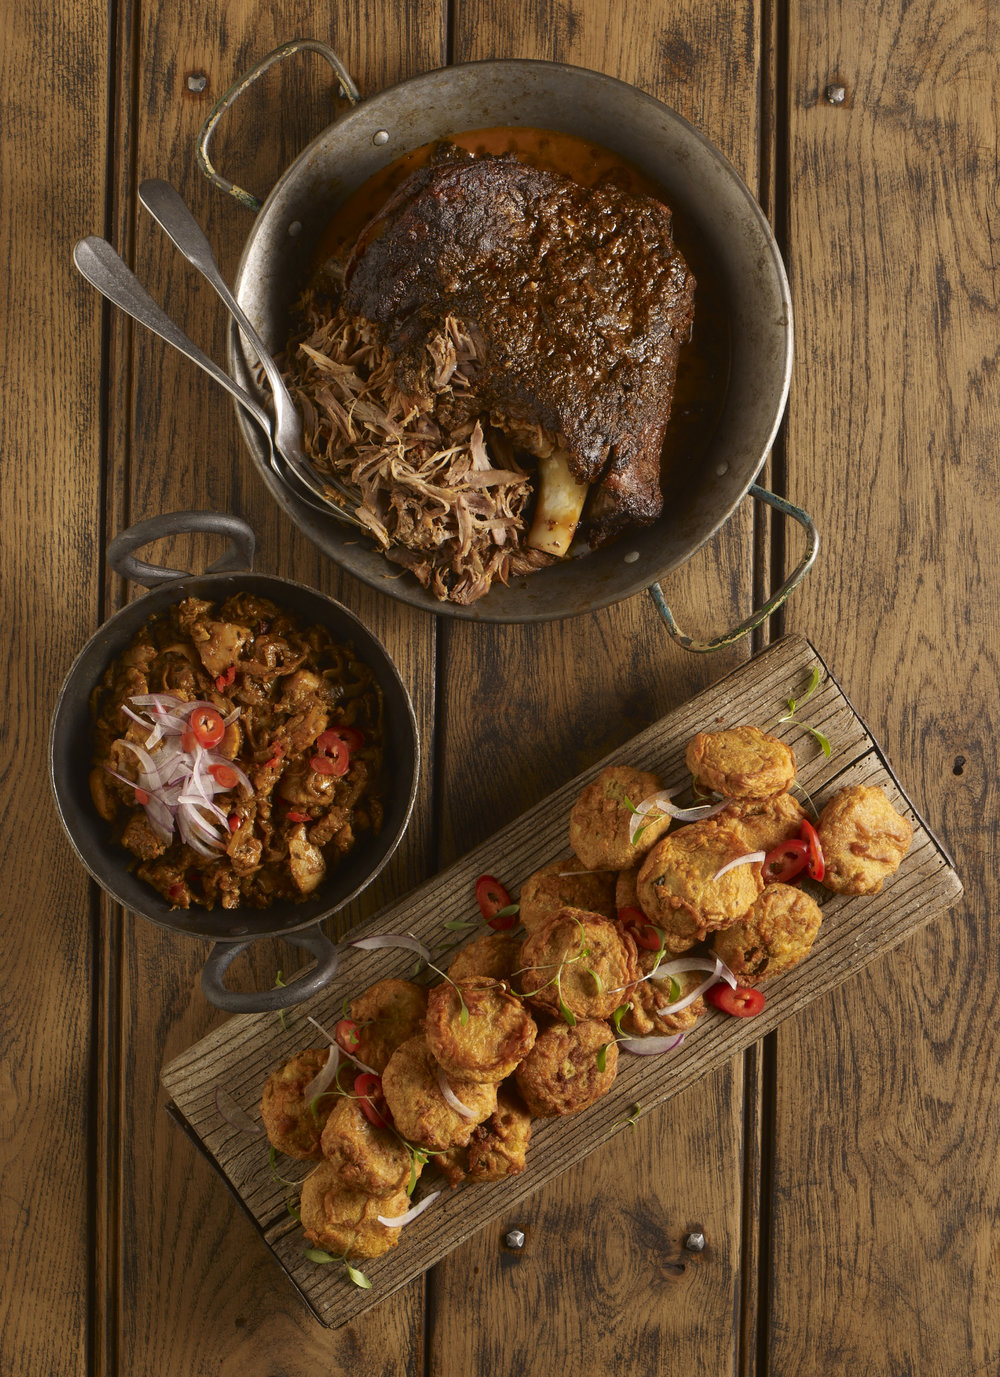 Modern Indian cuisine for Knorr, Food styling by Nico Ghirlando